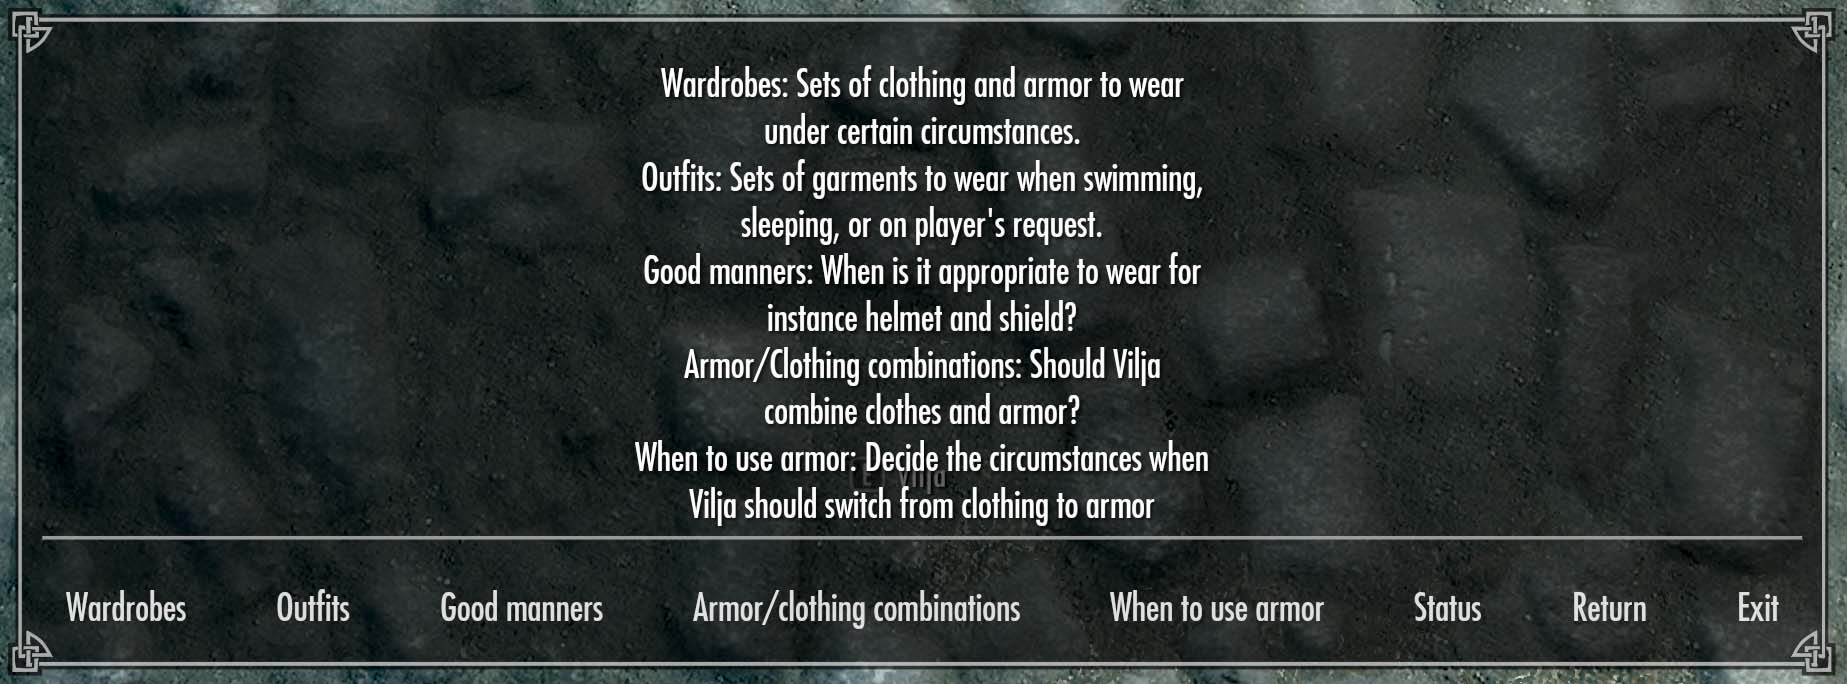 Guide to Vilja's Outfits and Wardrobes | Emma's Elder Scrolls Forum